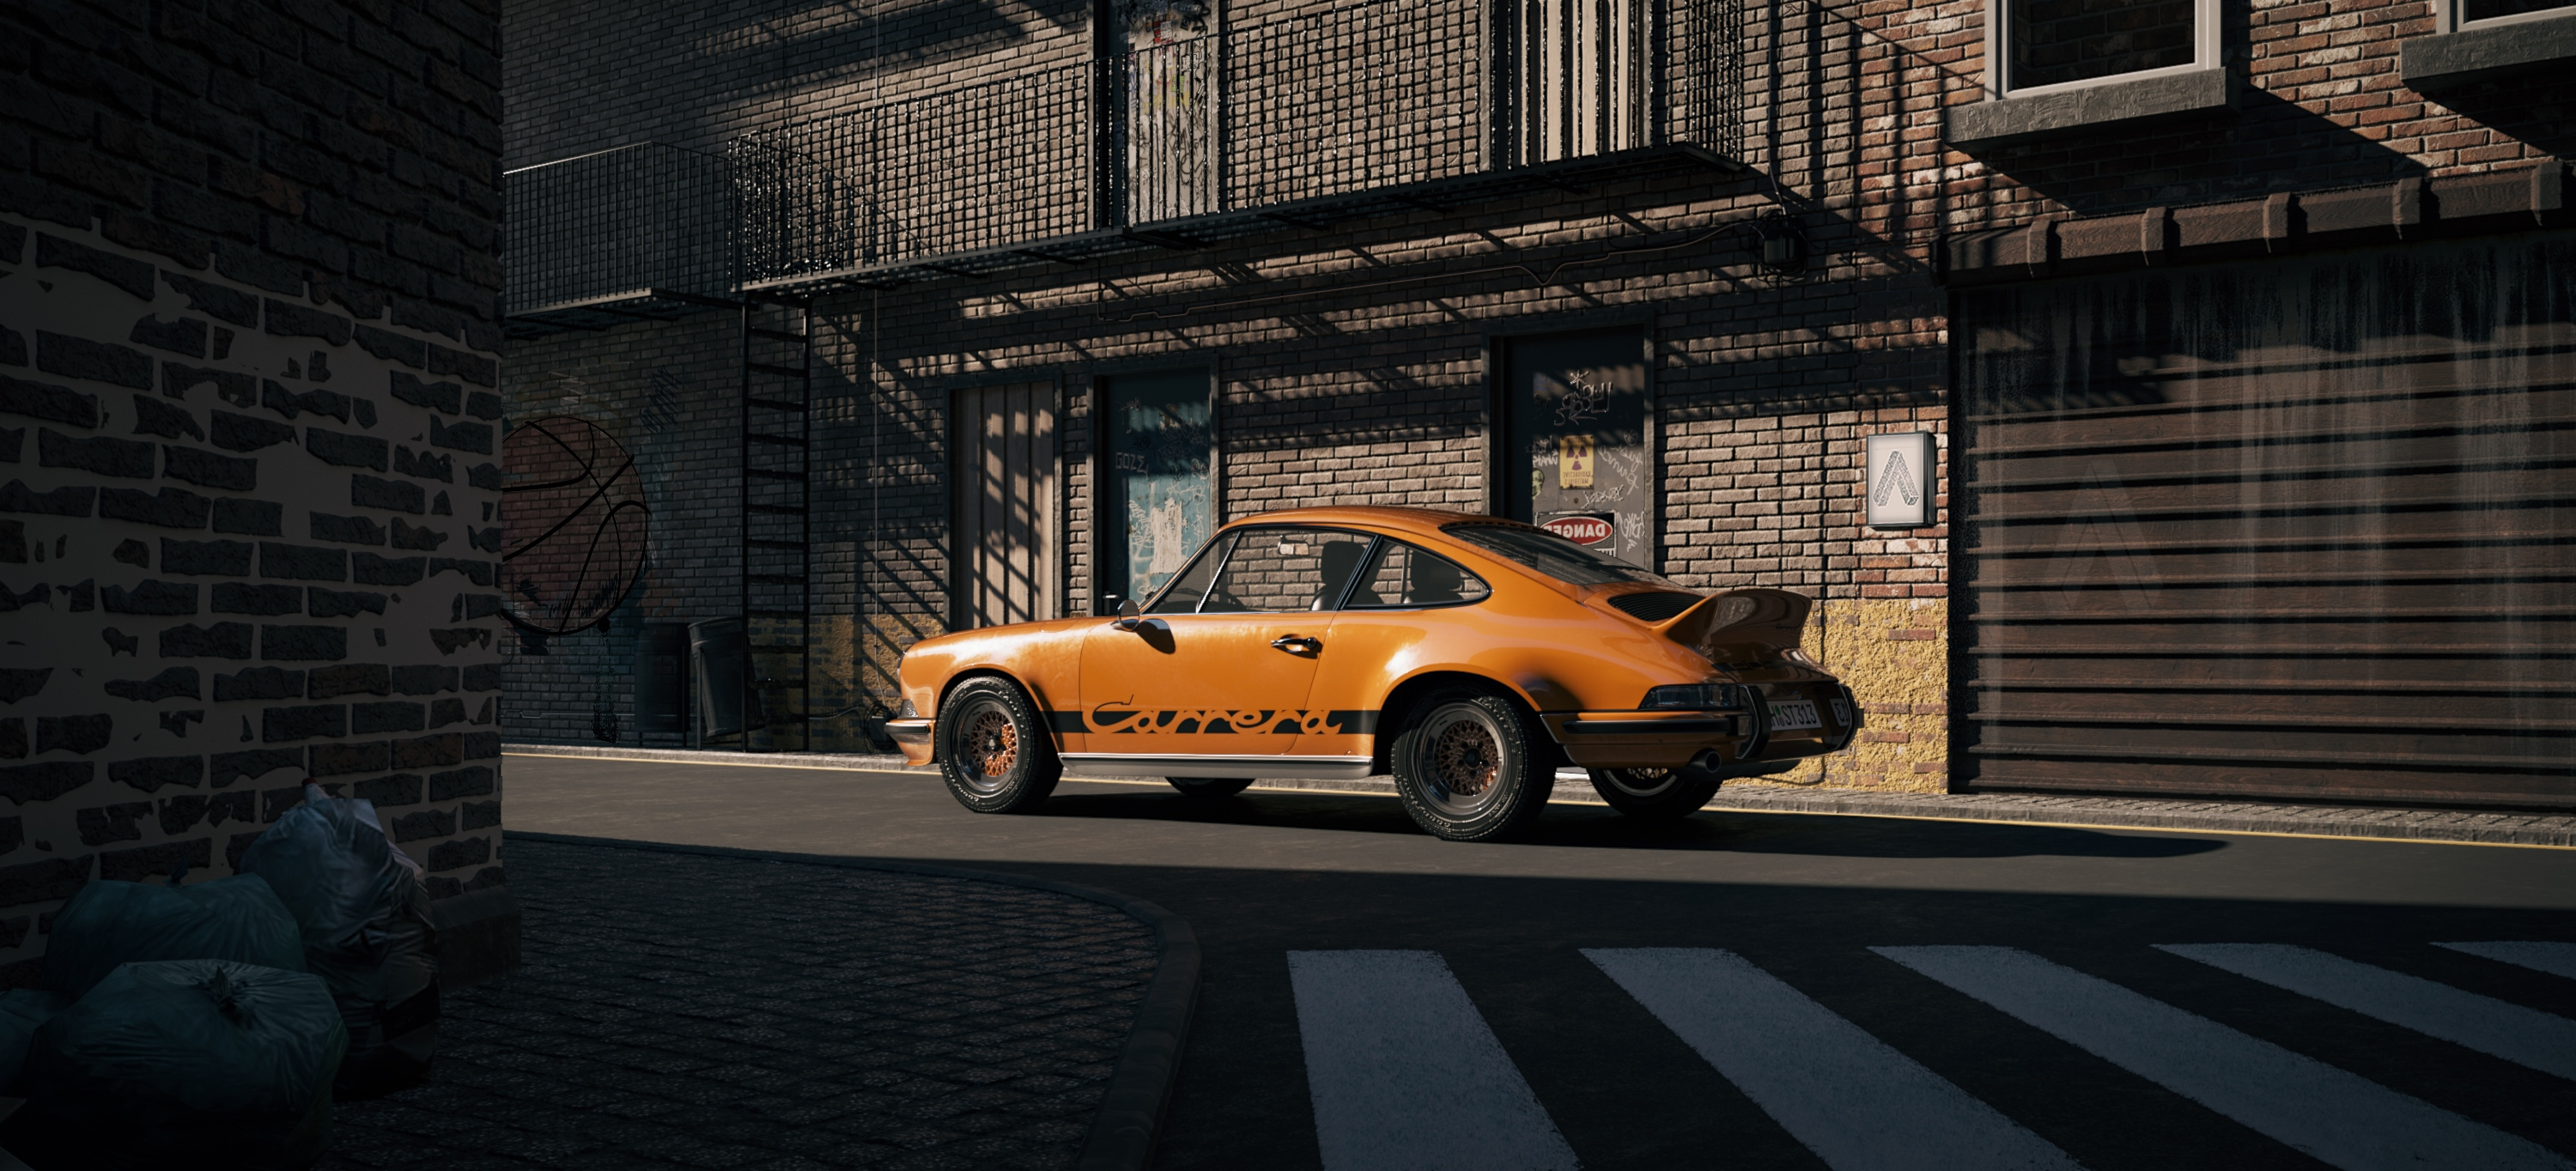 One day in suburbia – Porsche 911 RS 3d art